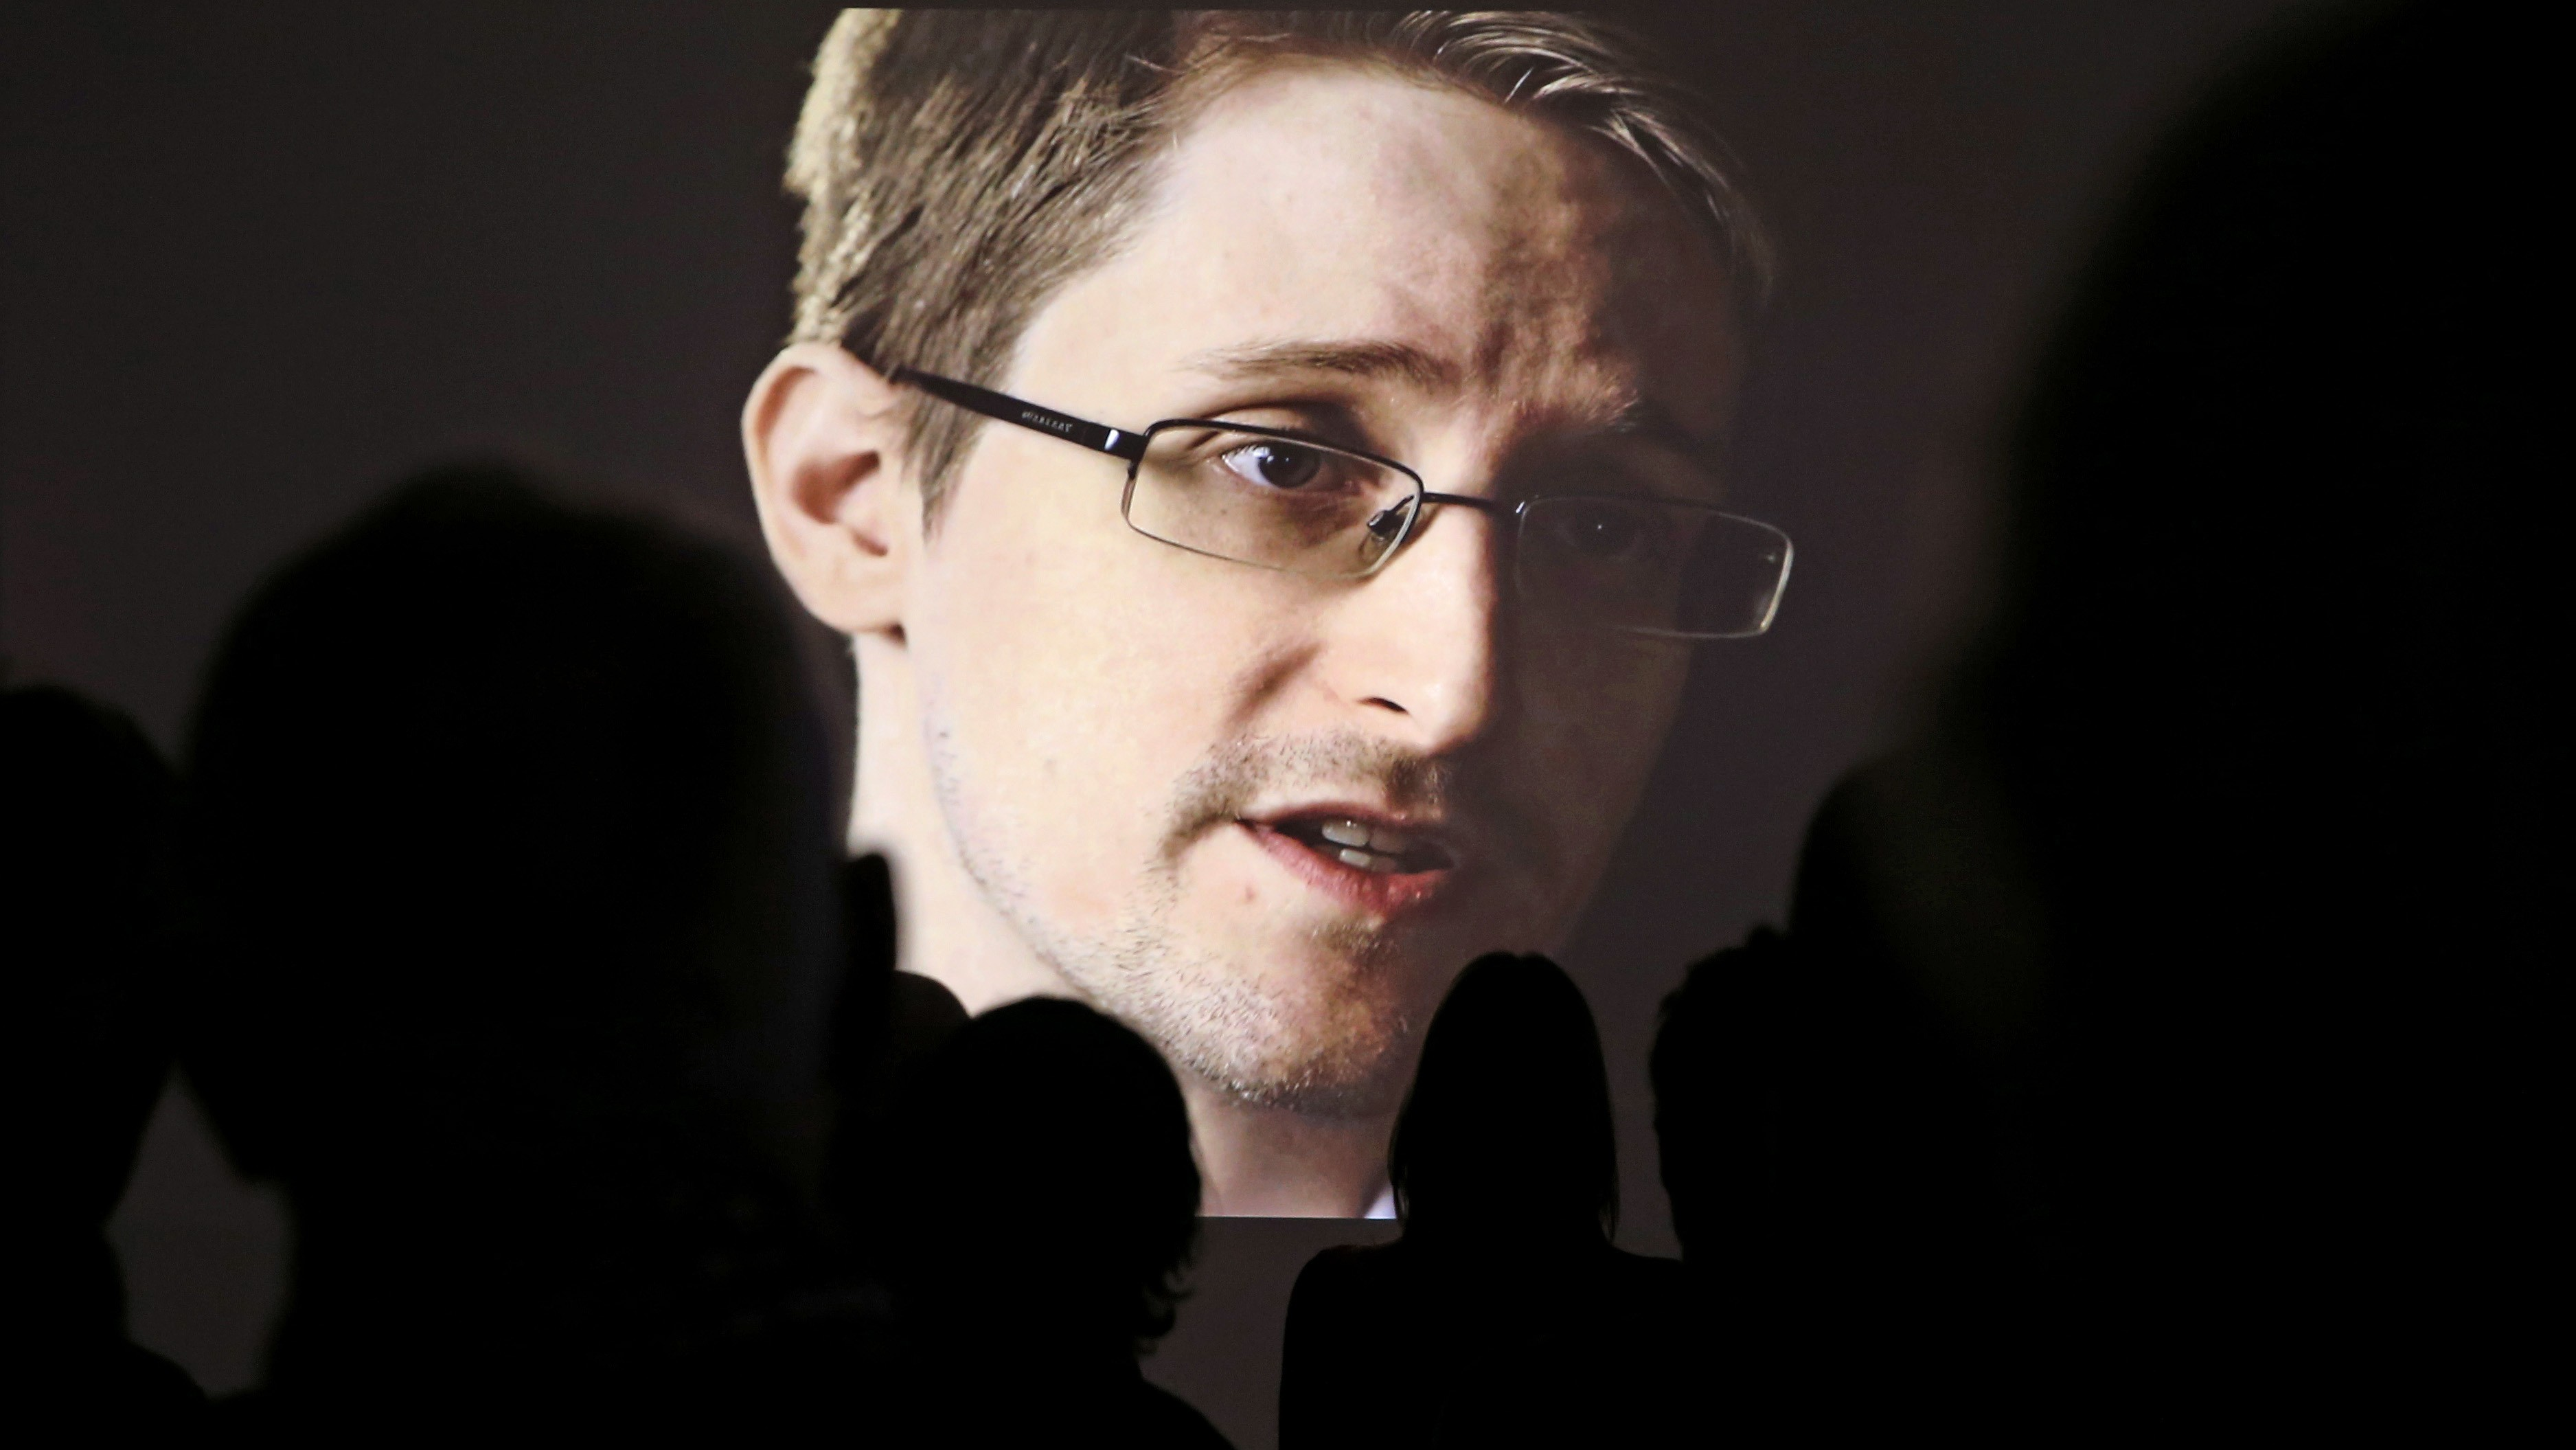 Snowden Claims 'Deceptive' NSA Still Has Proof He Tried to Raise Surveillance Concerns